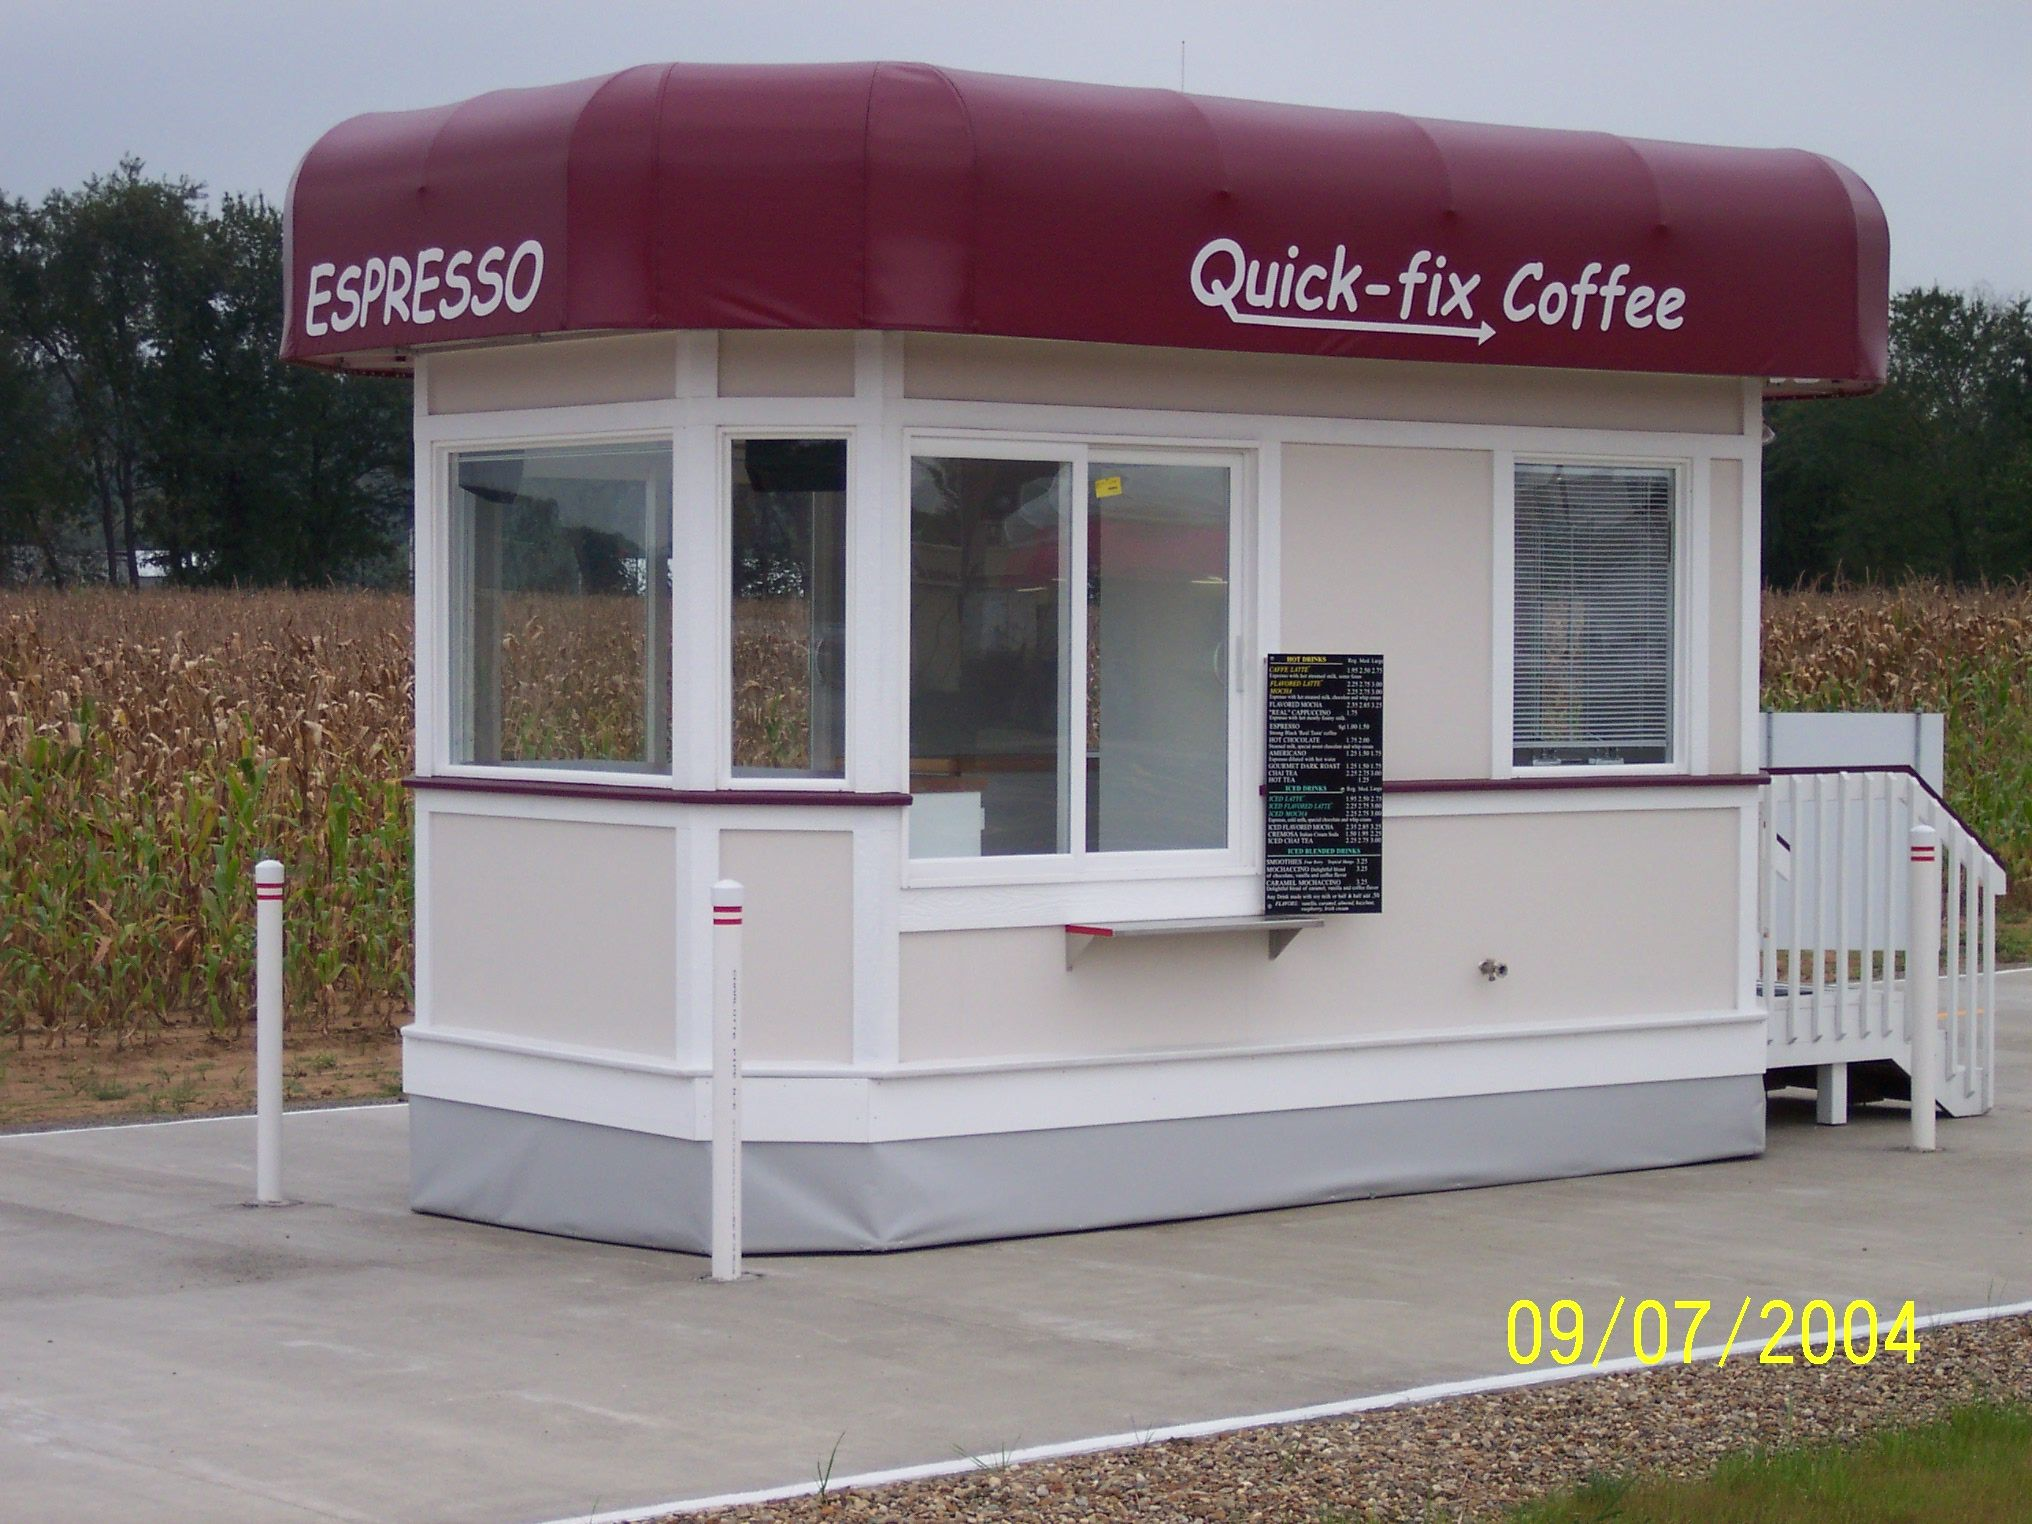 How To Open A Coffee Drive Thru Espresso Drive Thrus Coffee Stands Coffee Stands Mobile Coffee Shop Coffee Shop Business